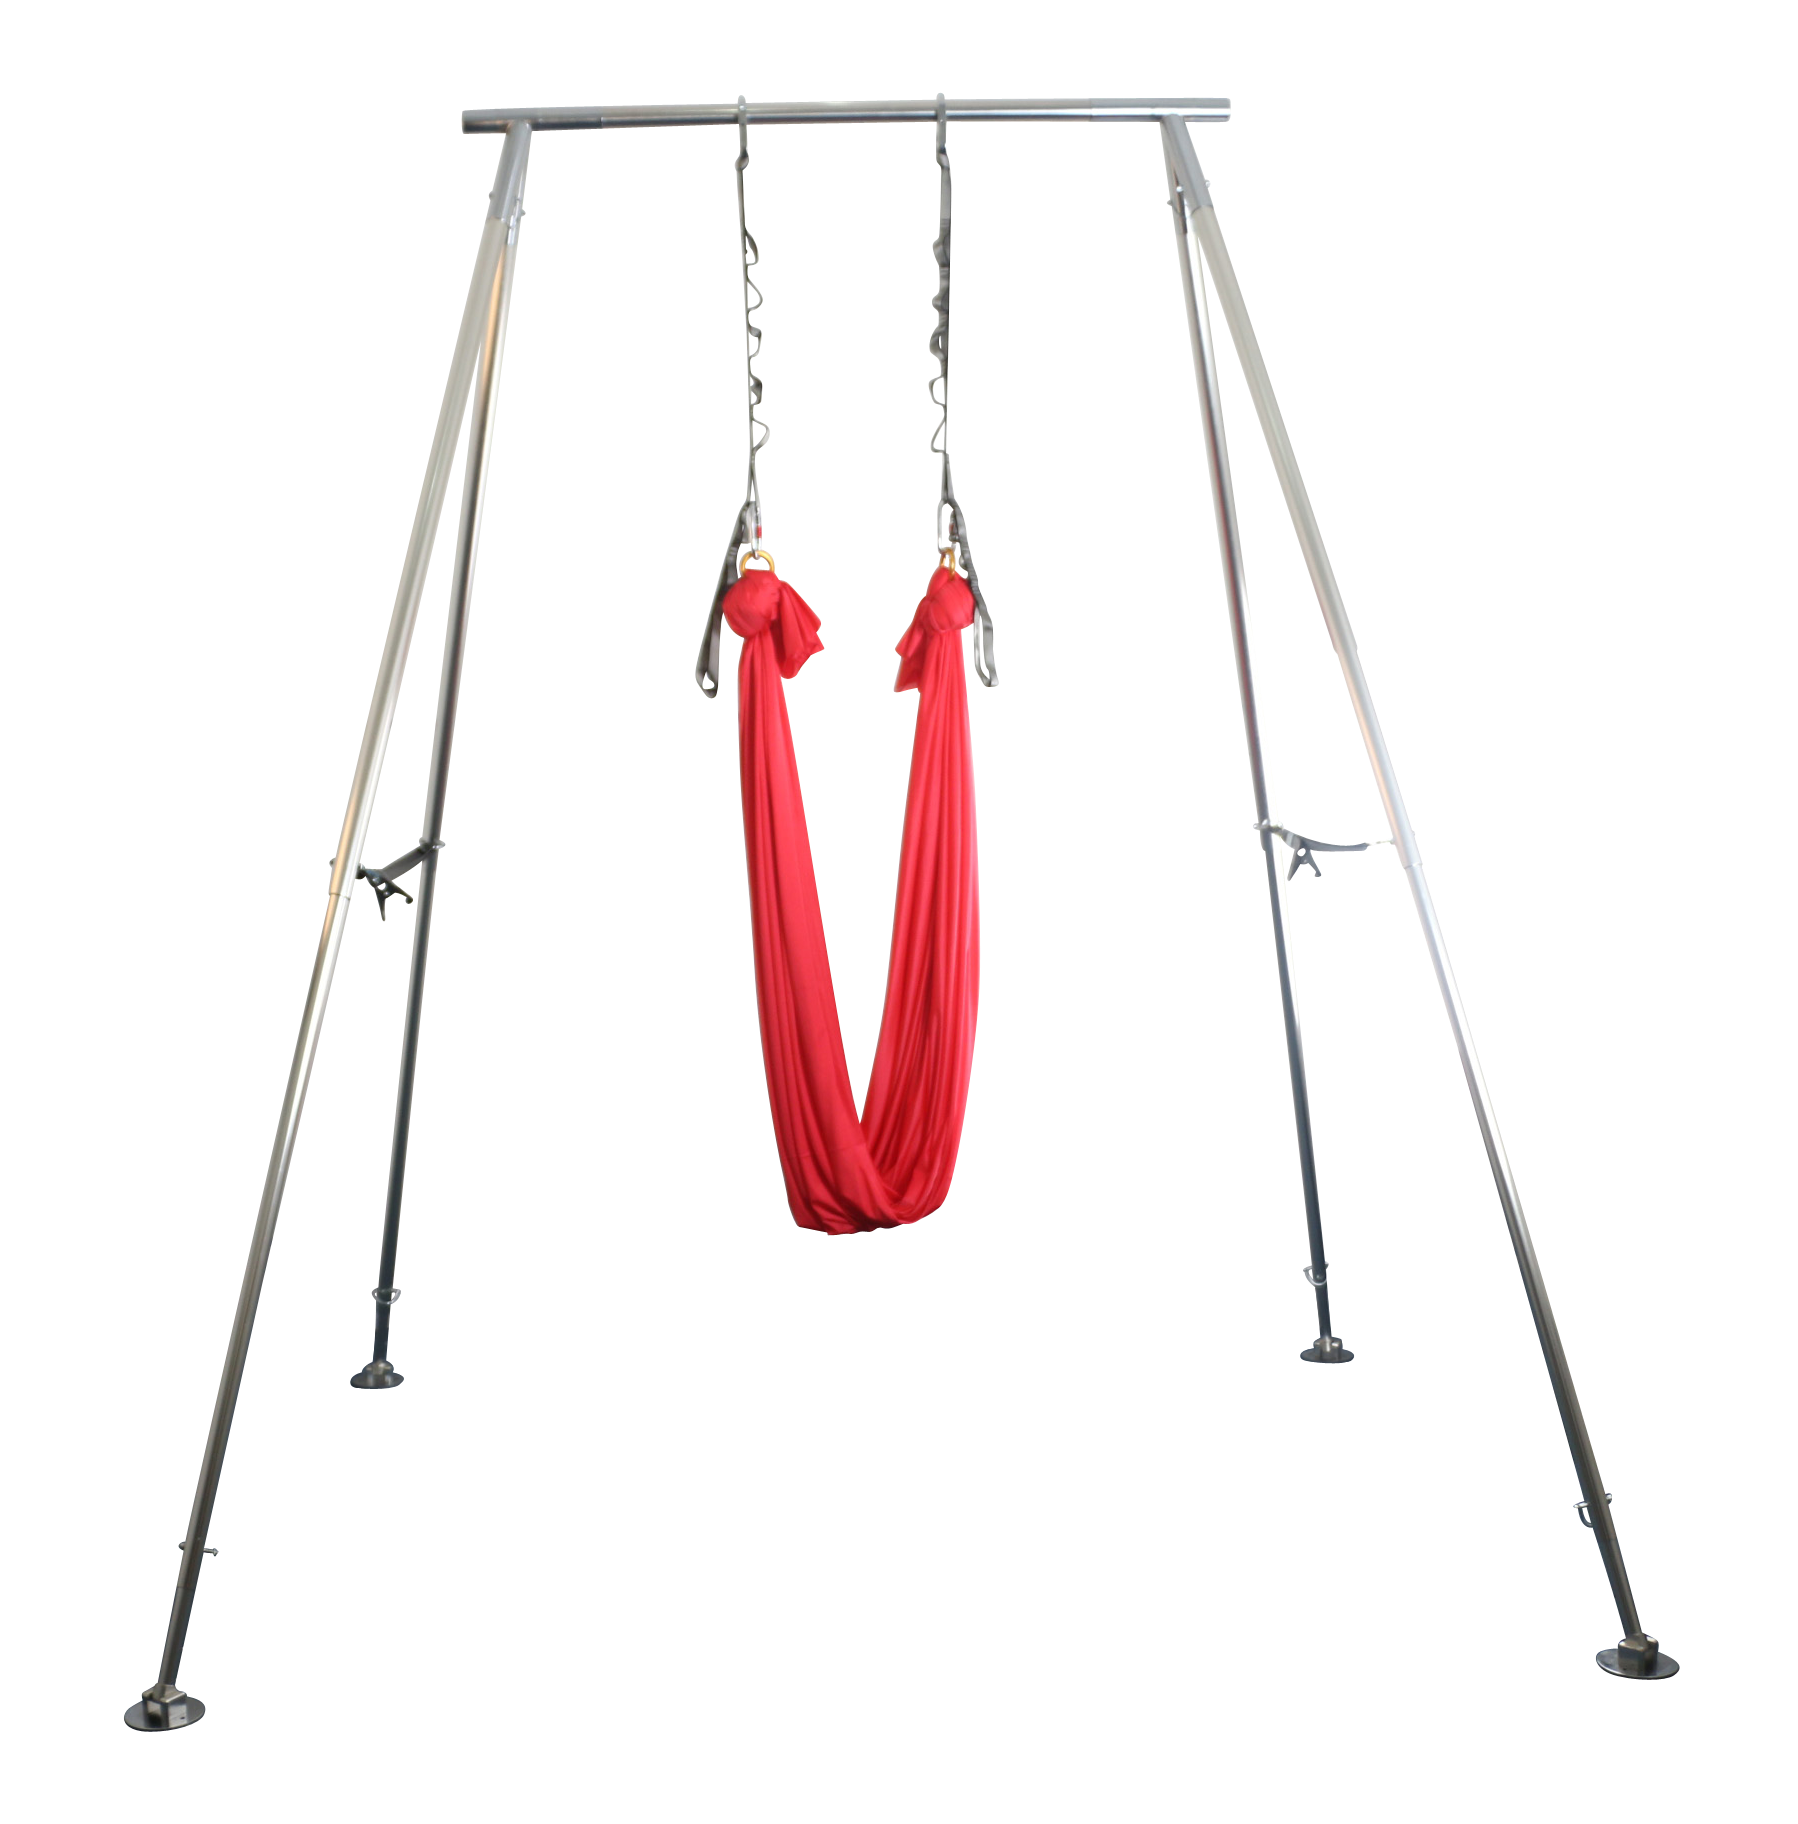 Pink Hammock on Height Adjustable Portable Aerial Rig - Uplift Active